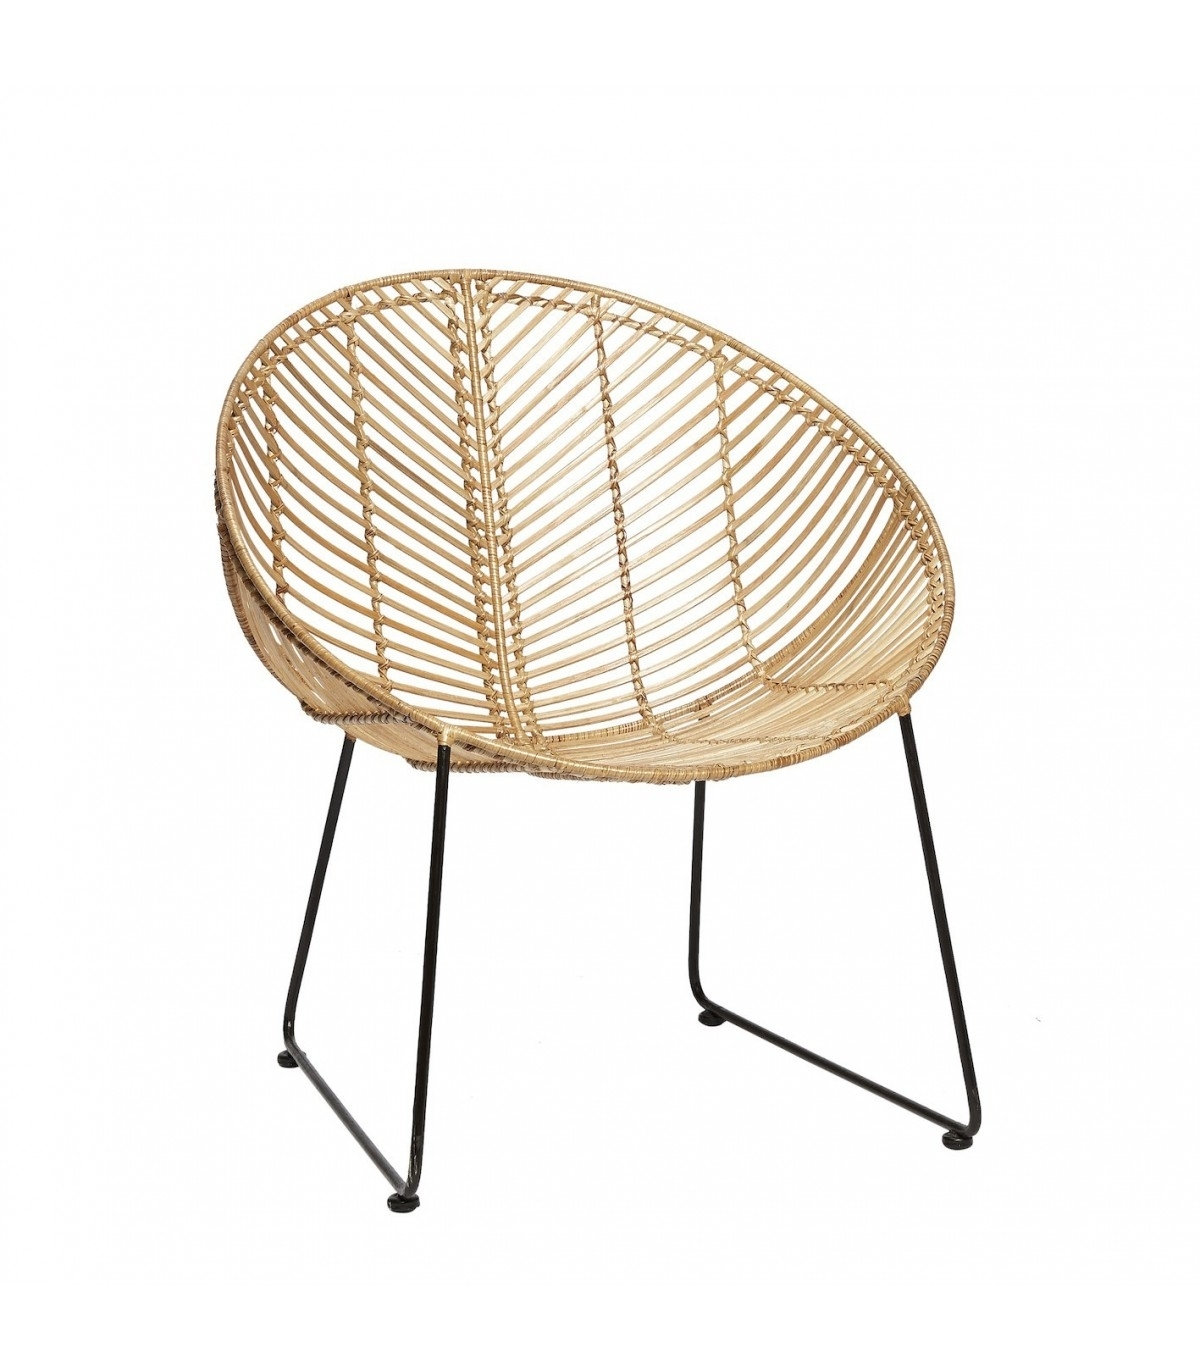 Natural Rattan Metal Chairs Throughout Most Popular Natural Rattan Round Chair Hbsch (View 19 of 20)